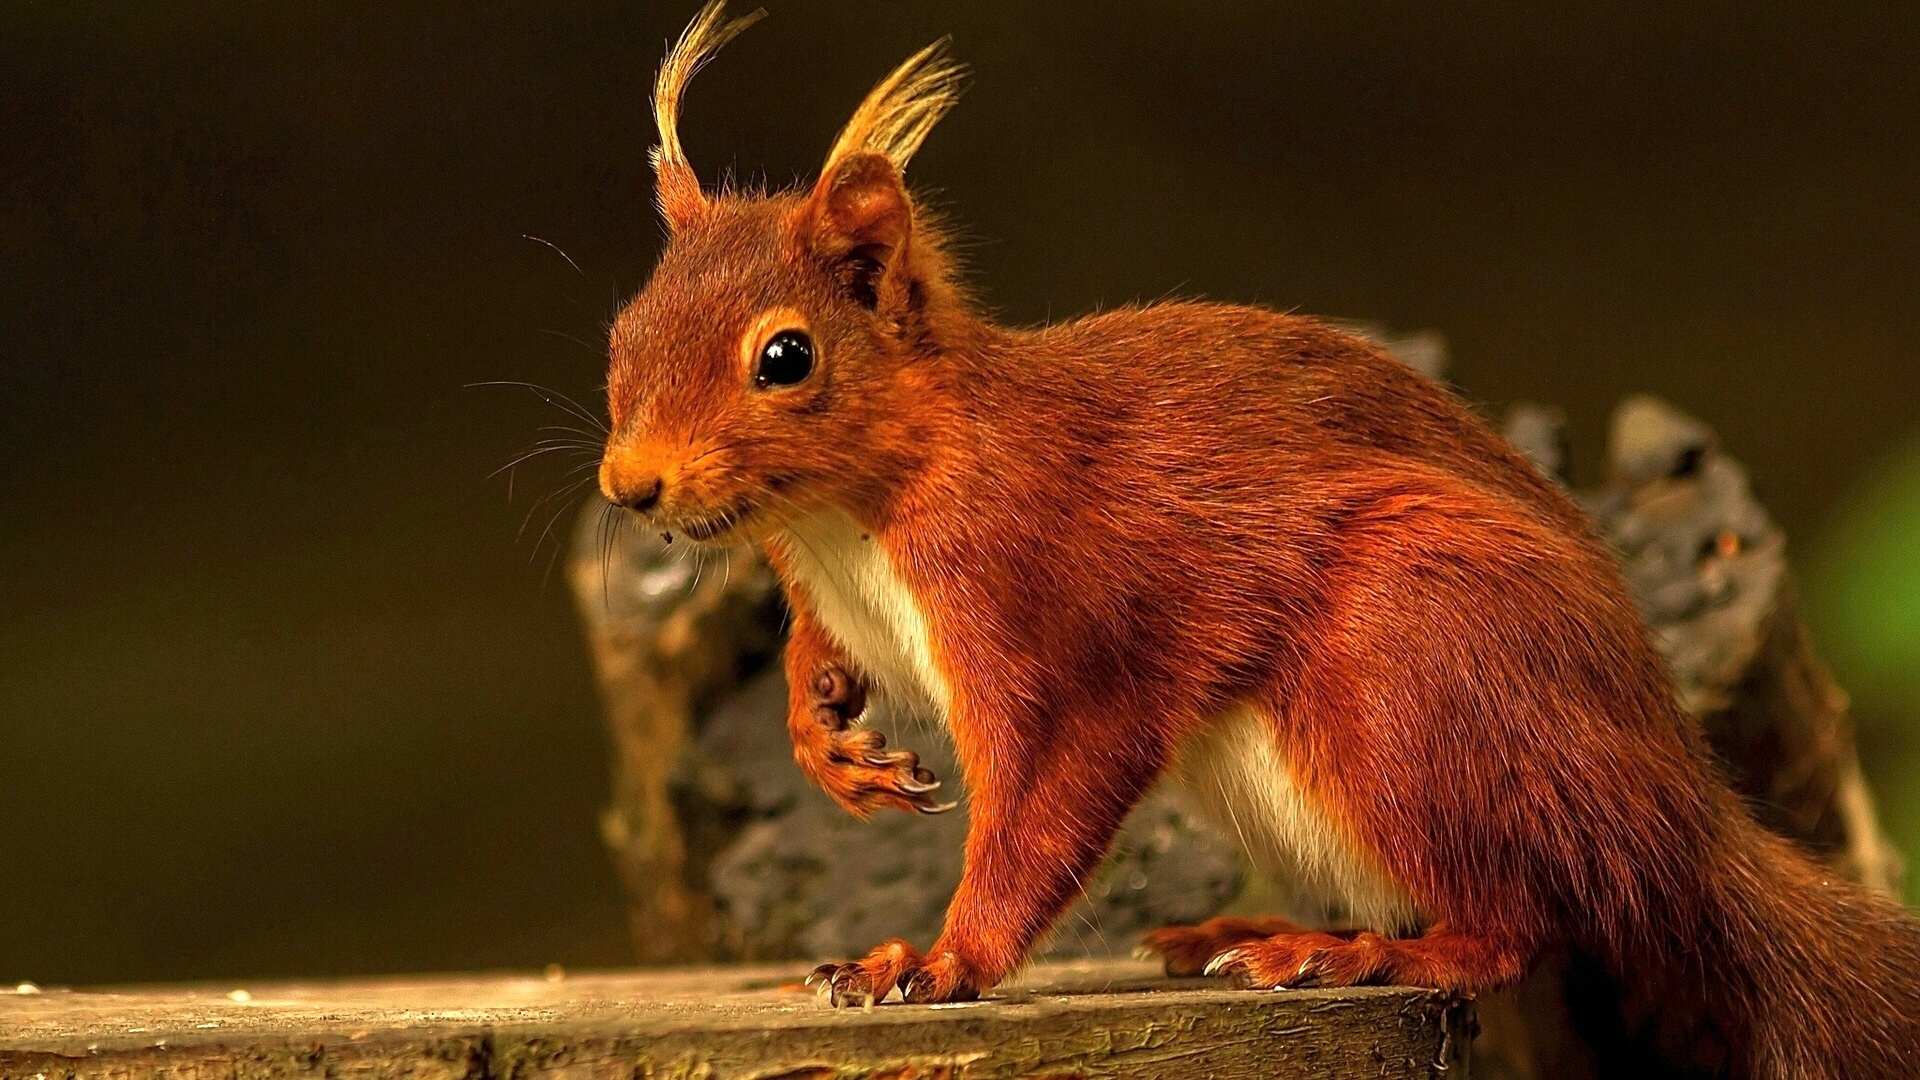 30743 download wallpaper Animals, Squirrel screensavers and pictures for free